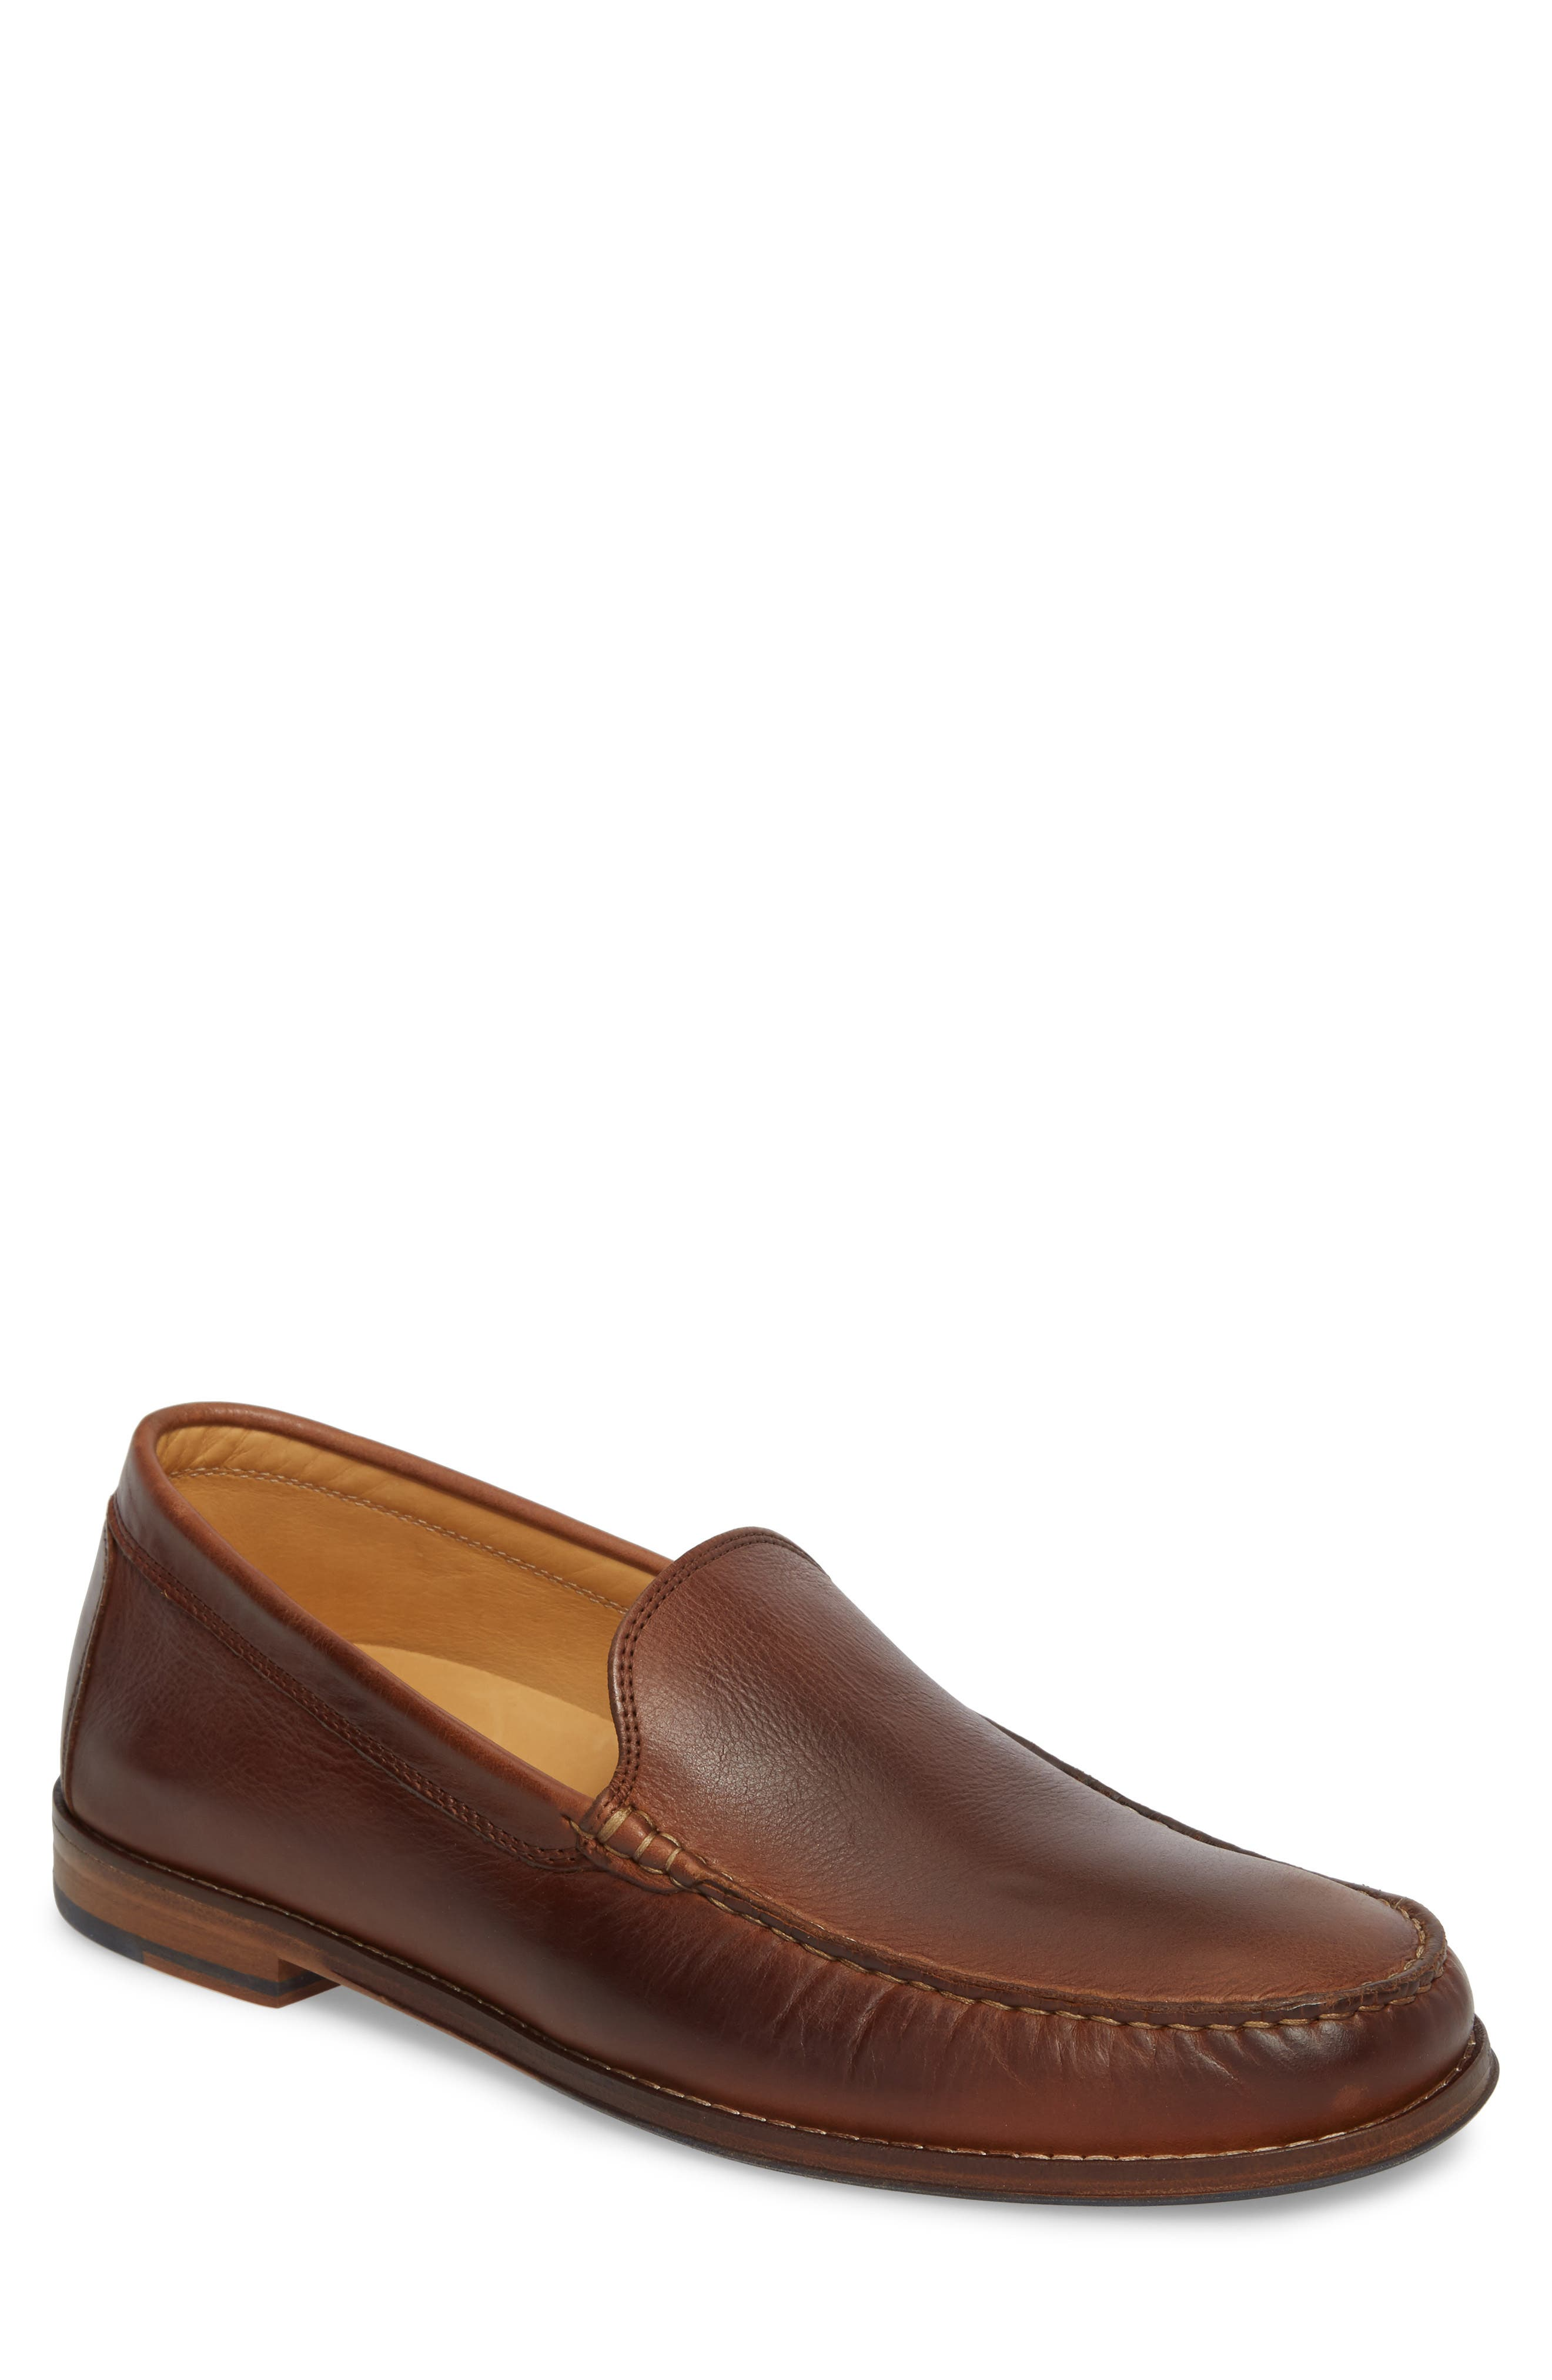 Caldwells Loafer,                         Main,                         color, LIGHT BROWN DISTRESSED LEATHER